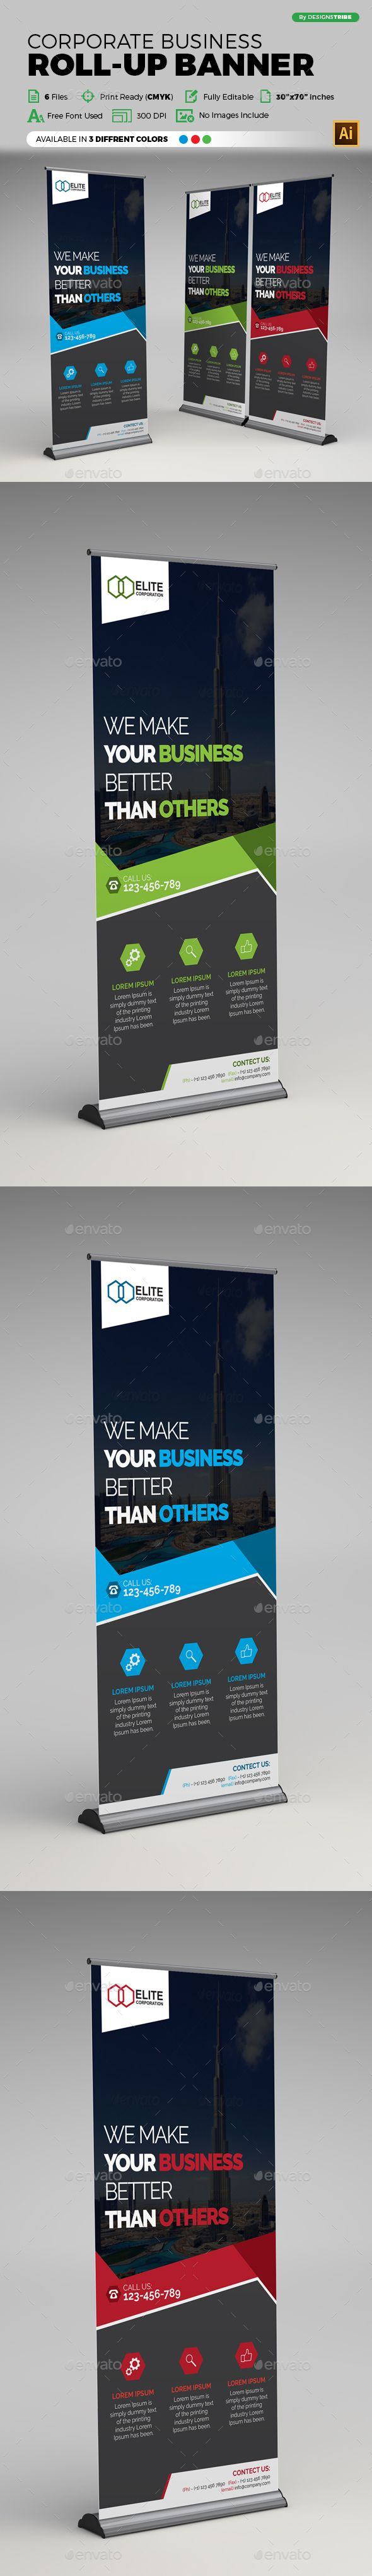 Corporate Business Roll-up Banner Design Template - Signage Print Templates Vect...